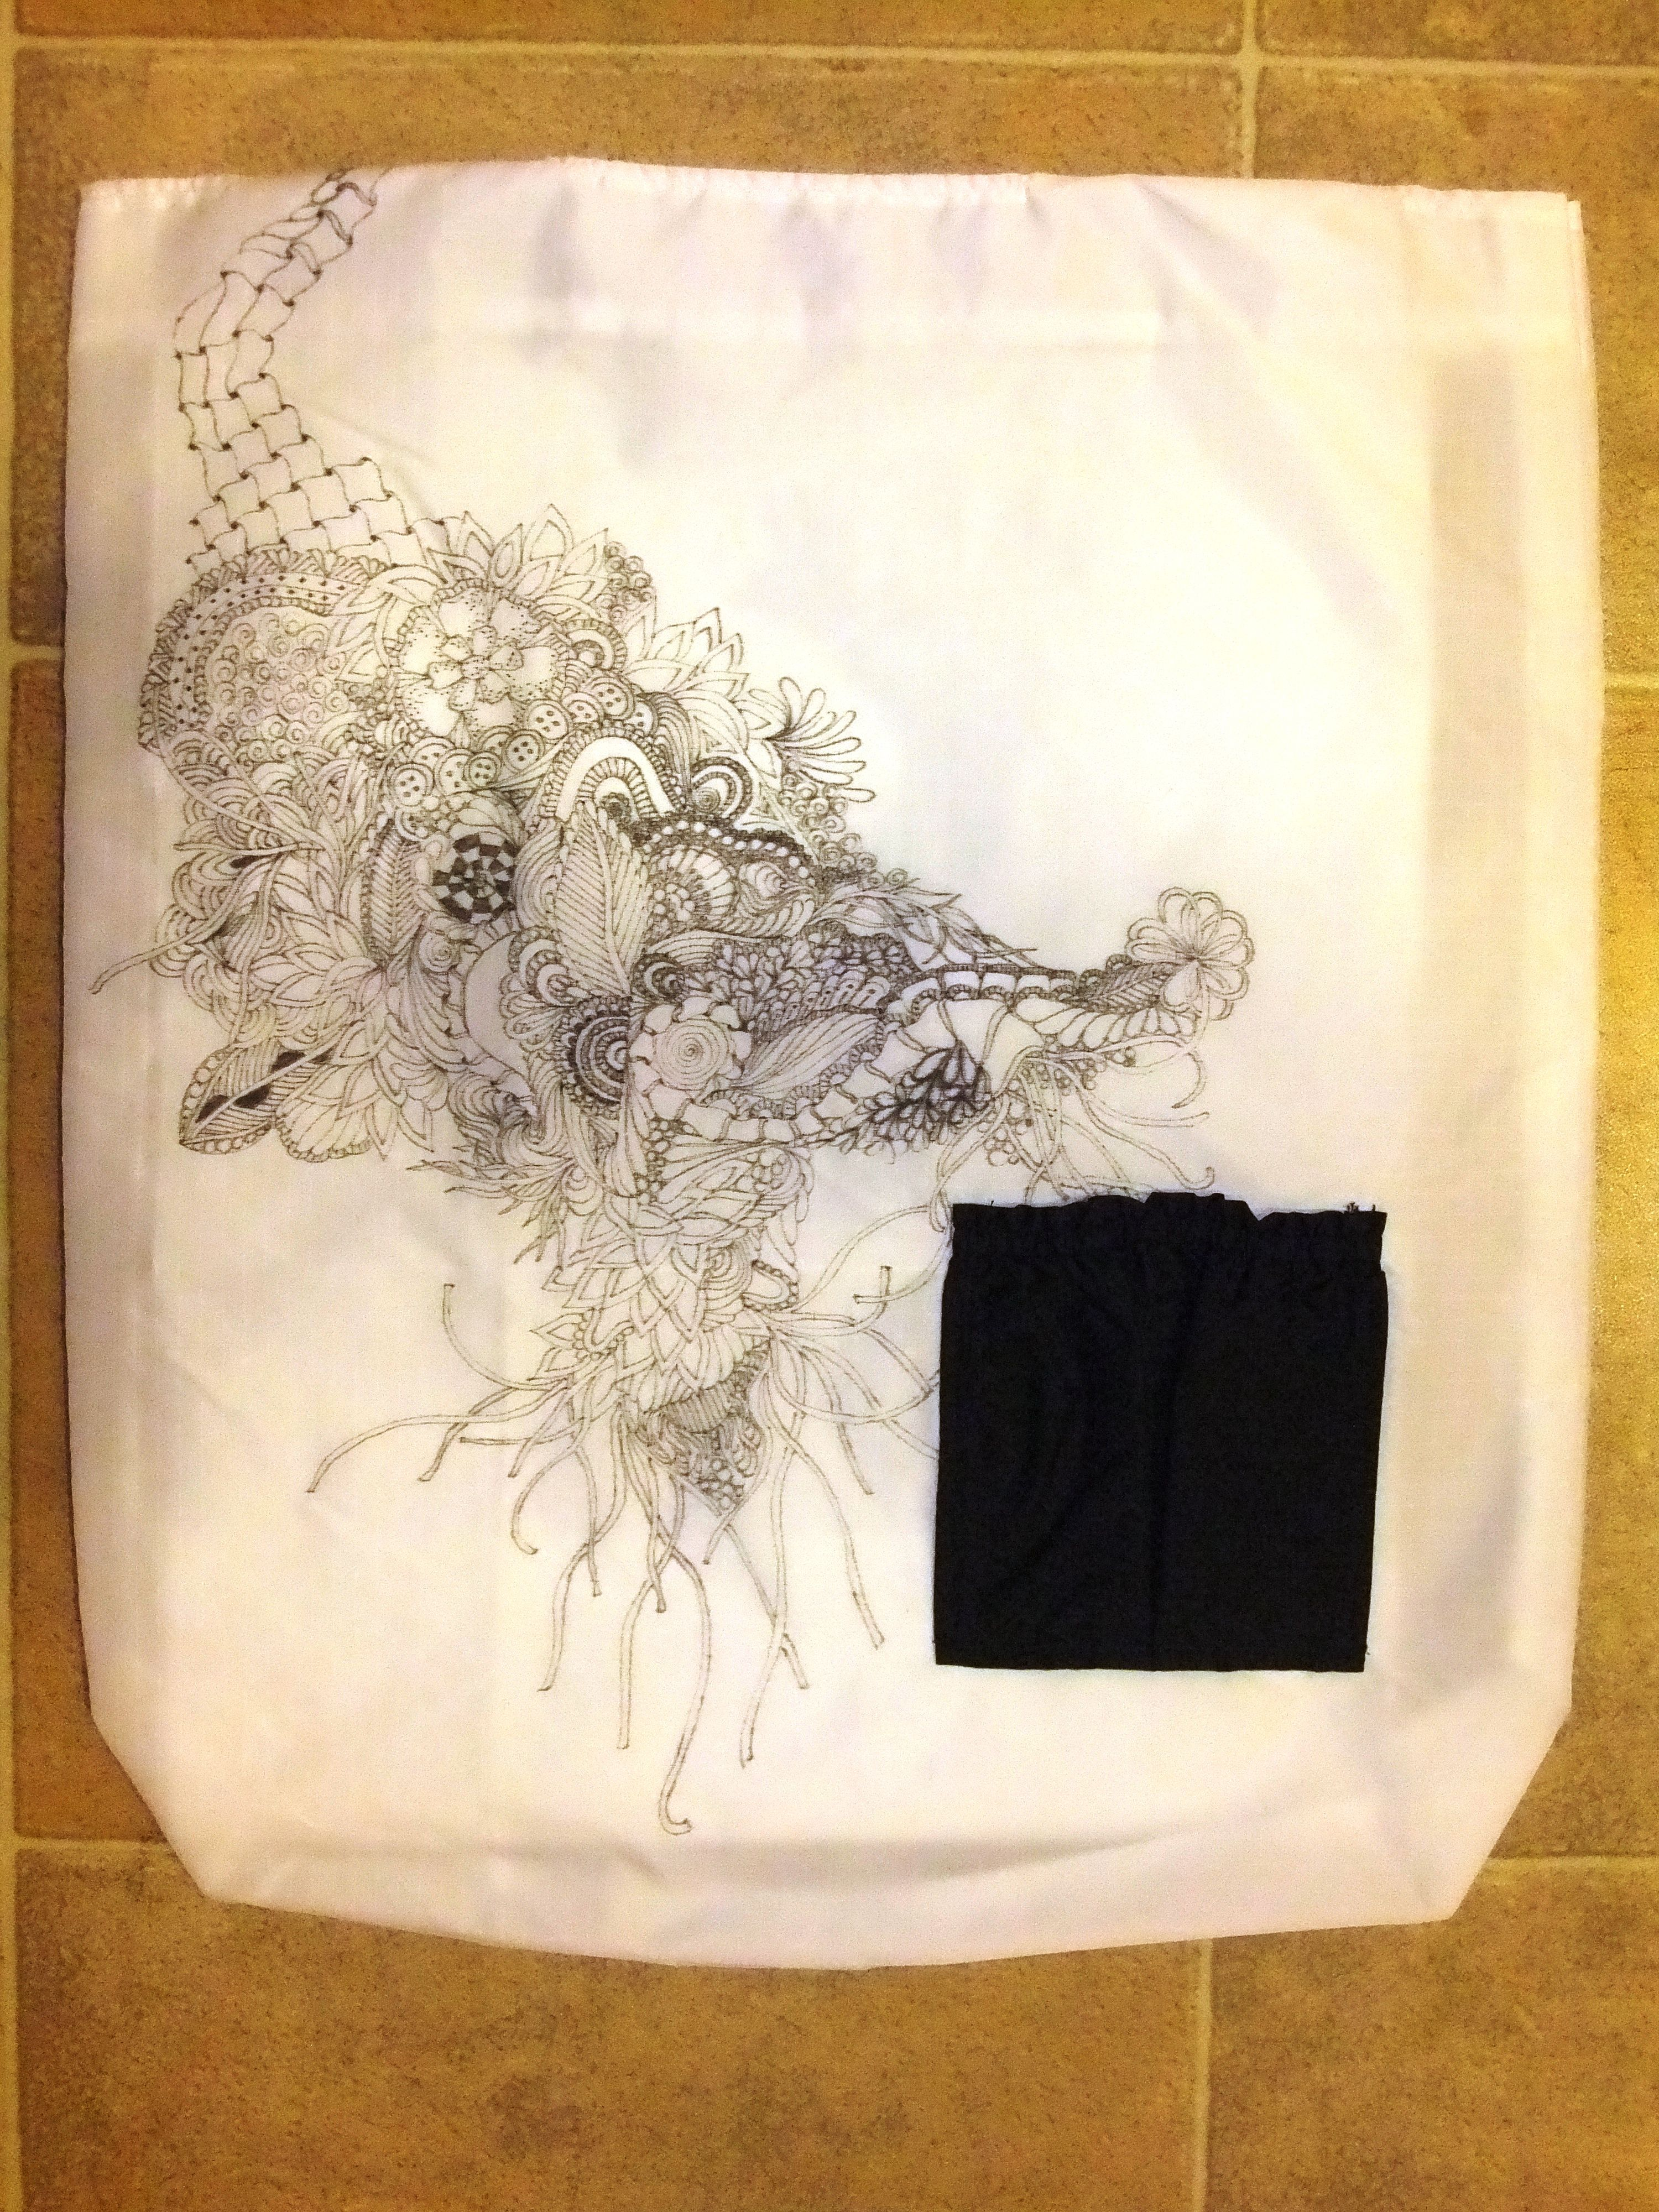 Zendoodle Market Bag with pocket  Bag is handmade with Zentangle patterns drawn freehand.  Designed & Created by Deborah A. Pace